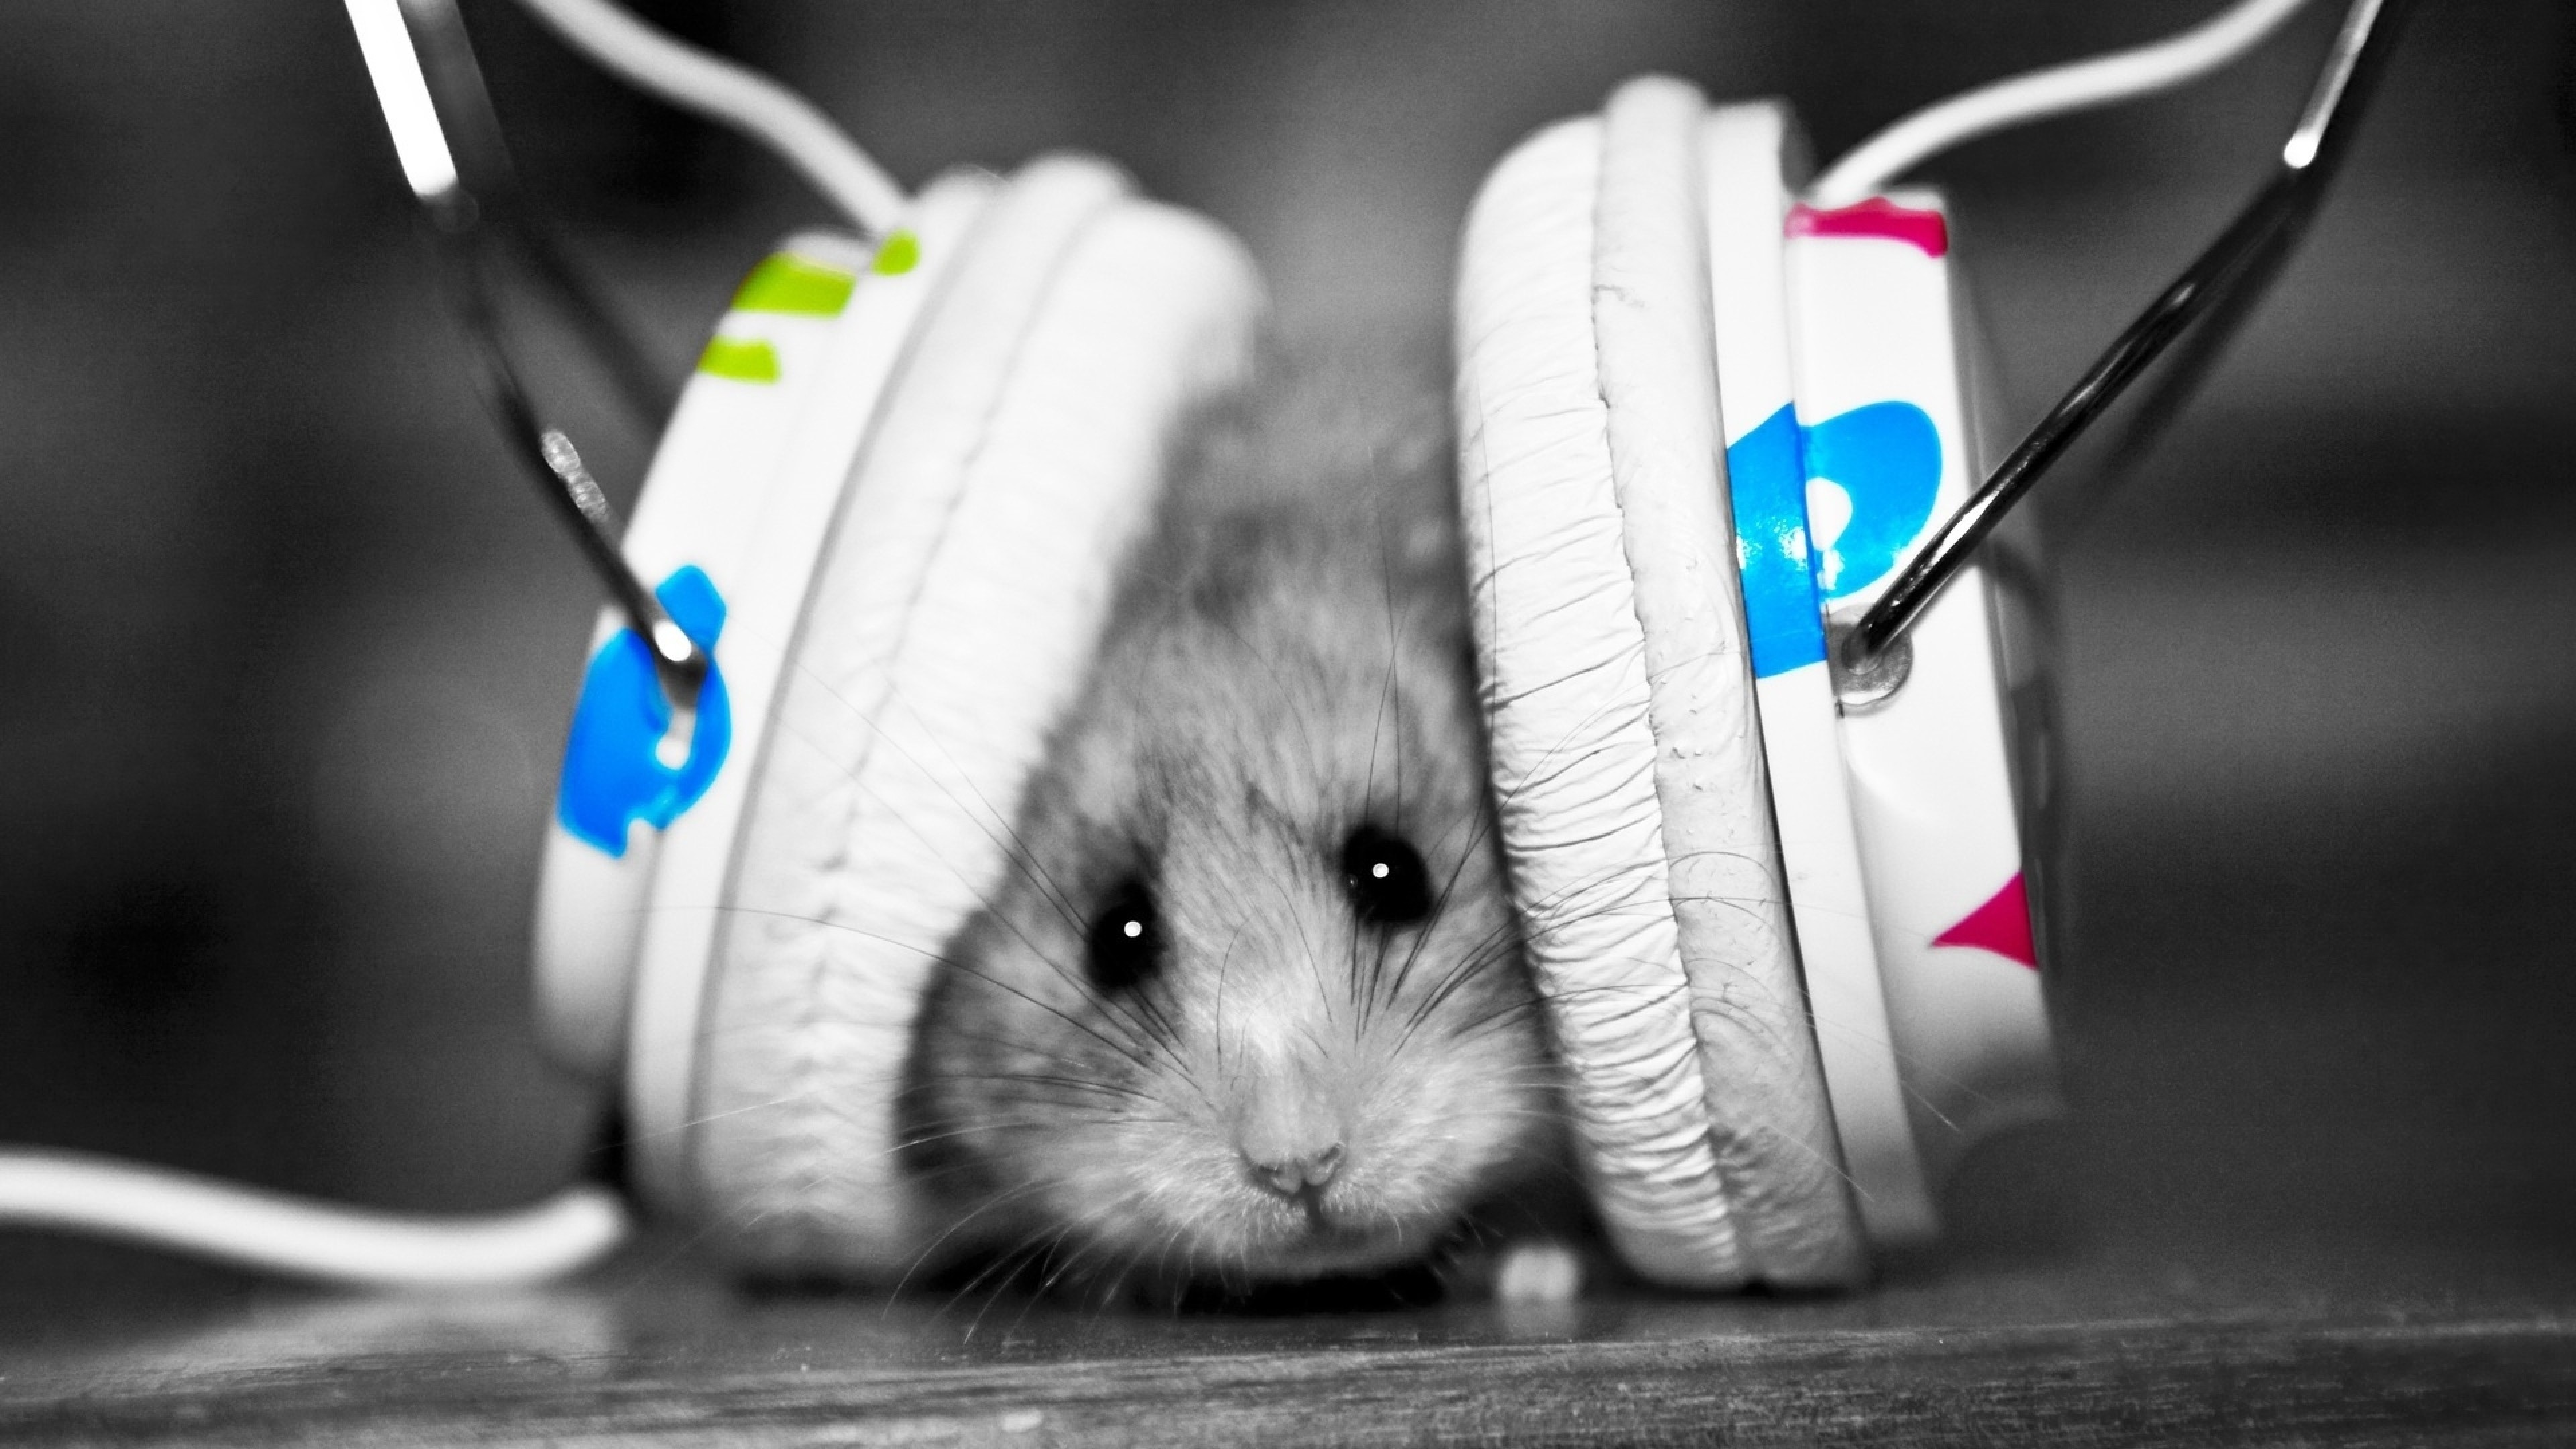 3840x2160 Preview wallpaper funny, music fan, music, little, hamster